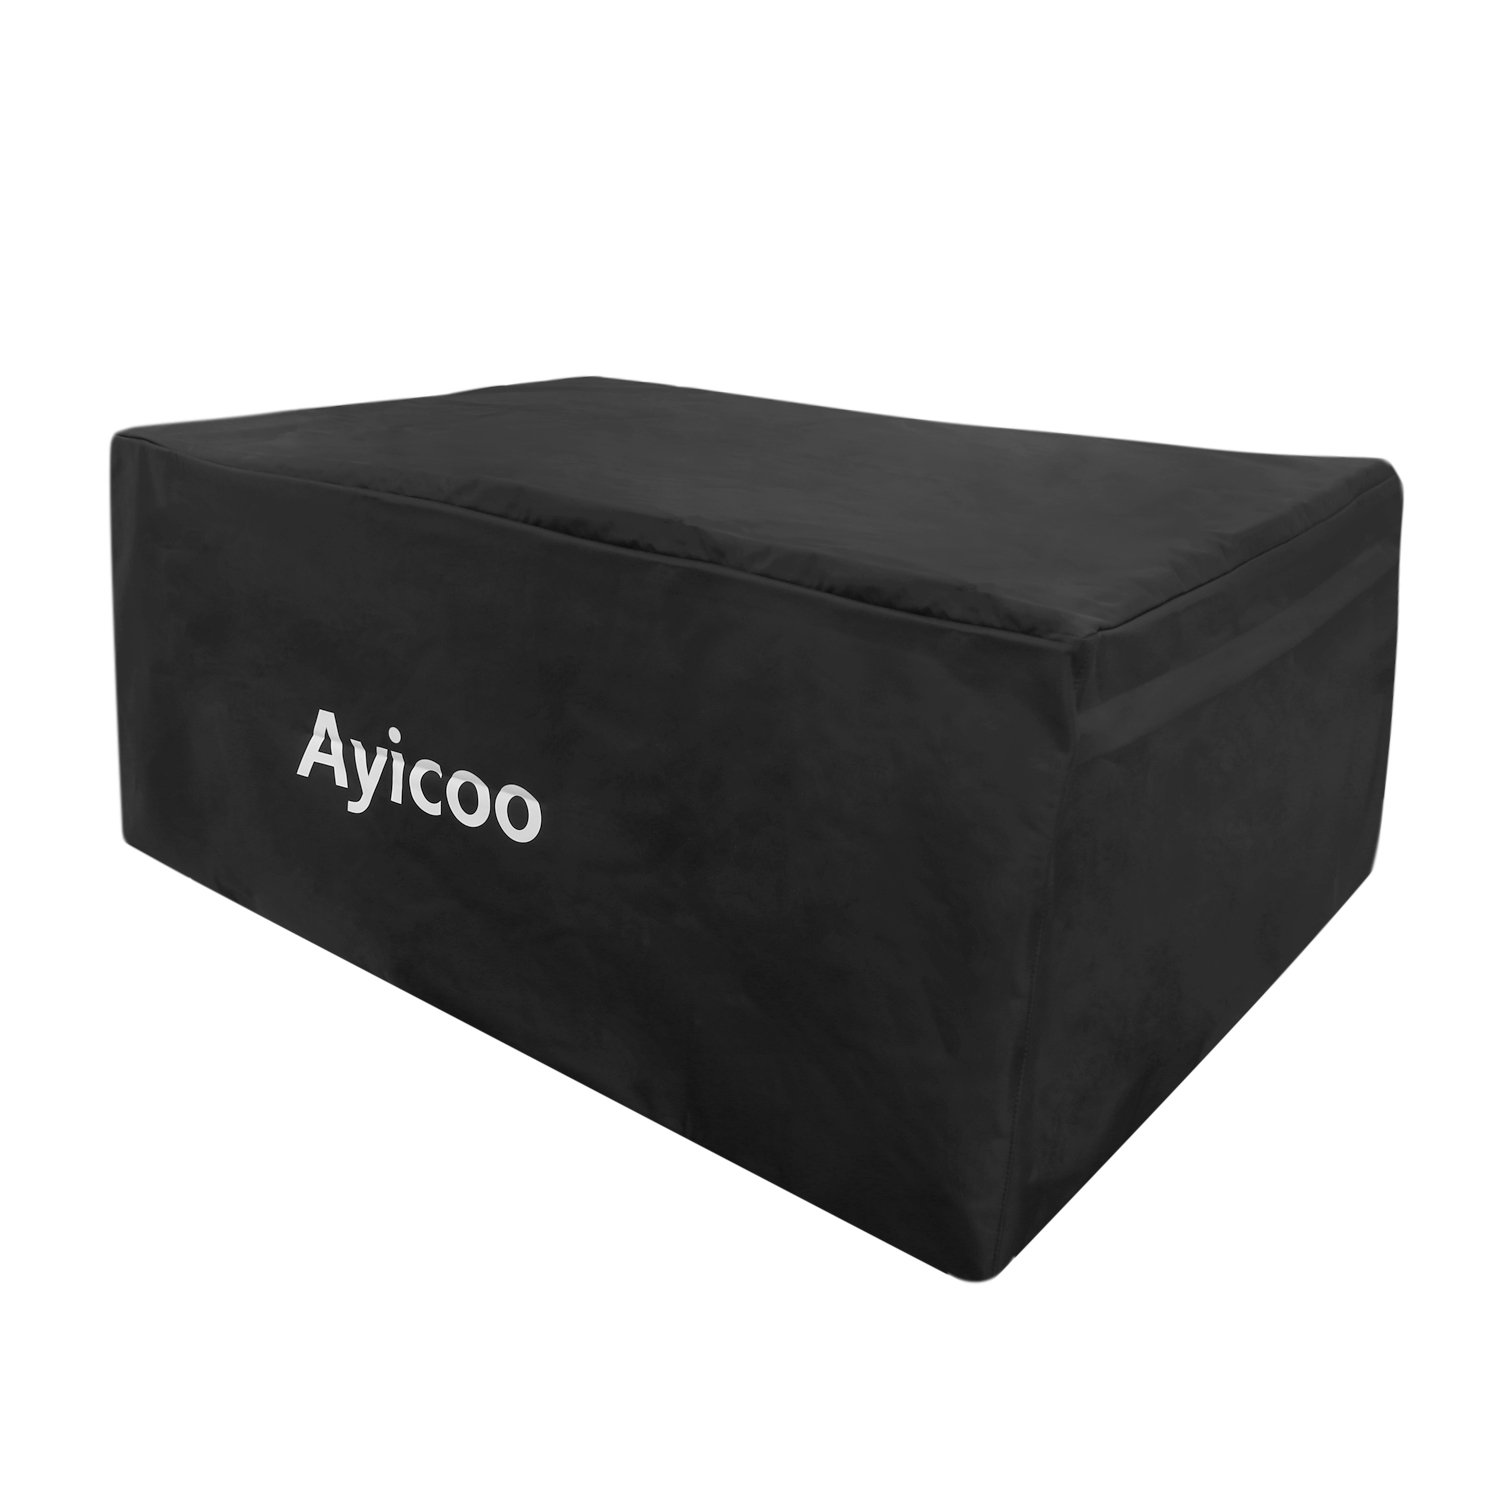 Ayicoo Car Rooftop Cargo Carrier Bag for SUV Jeep Truck, 21 Cubic Feet, Extra Large